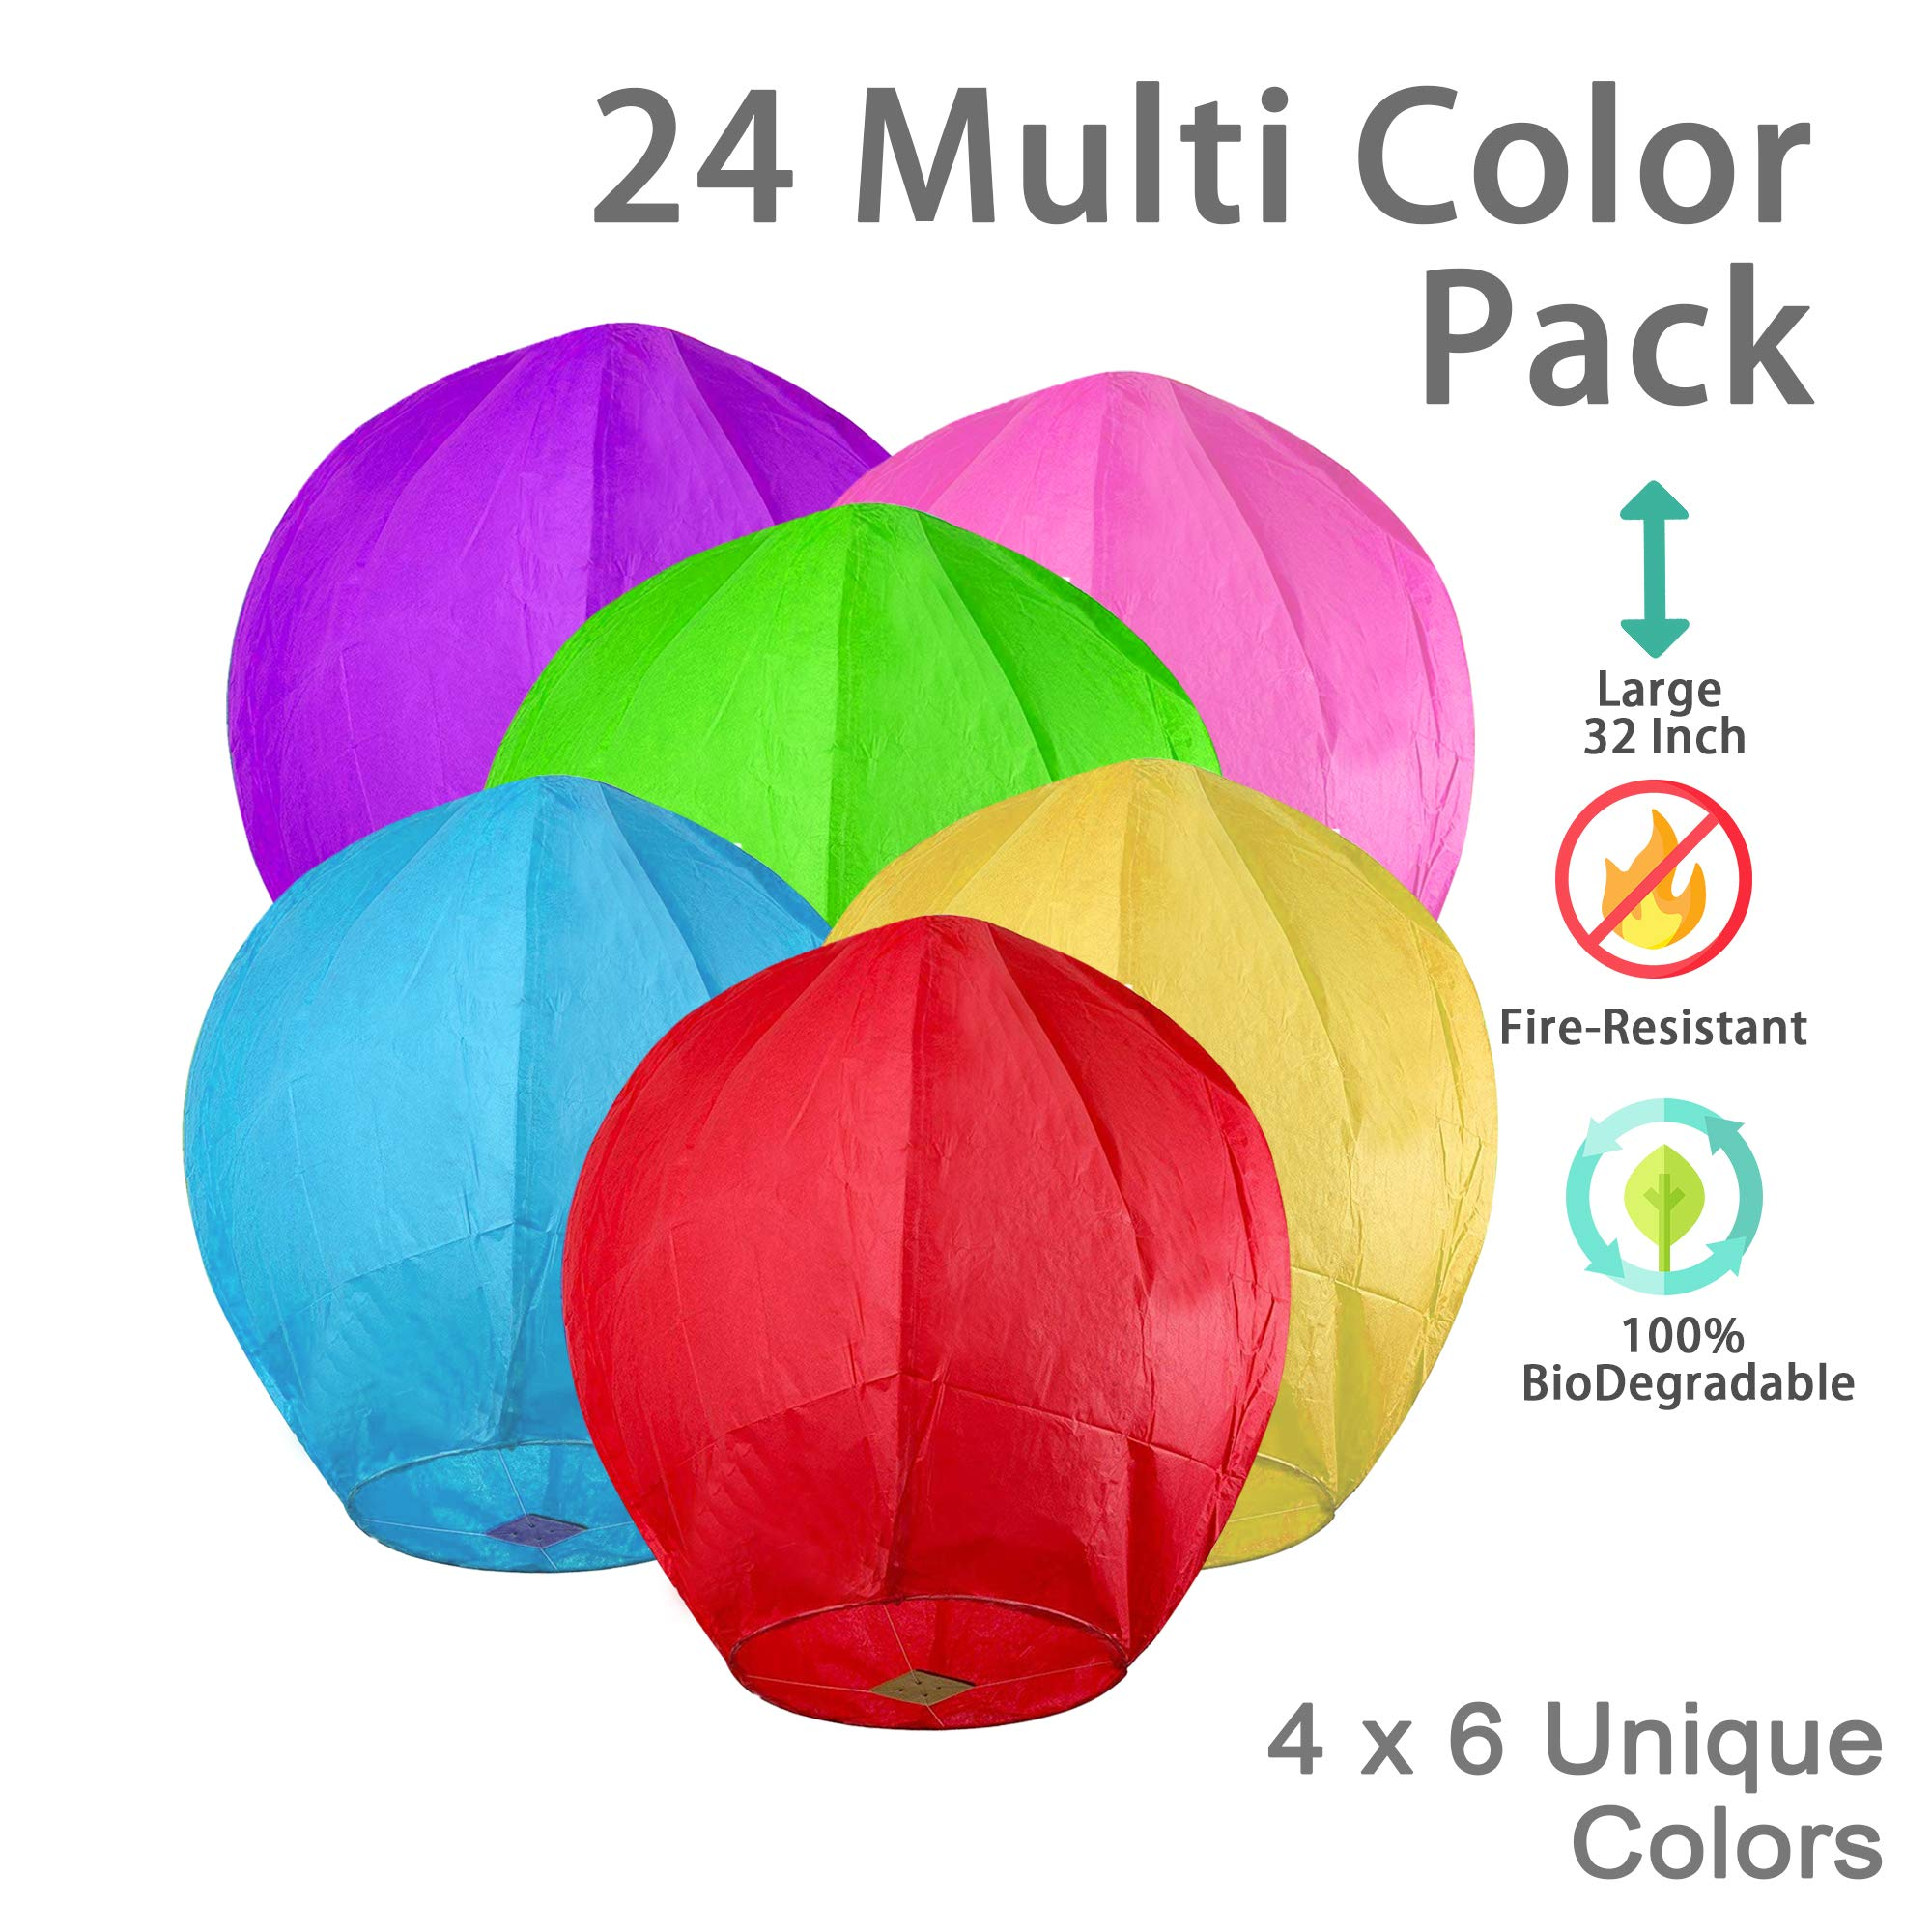 OOKU Large 34'' Chinese Sky Lanterns 24 Pack Colorful 100% Biodegradable Lanterns | Japanese/Chinese Lanterns for Weddings, Celebrations, Ceremonies | EcoFriendly 4 x 6 Colors Wishing Lanterns by OOKU